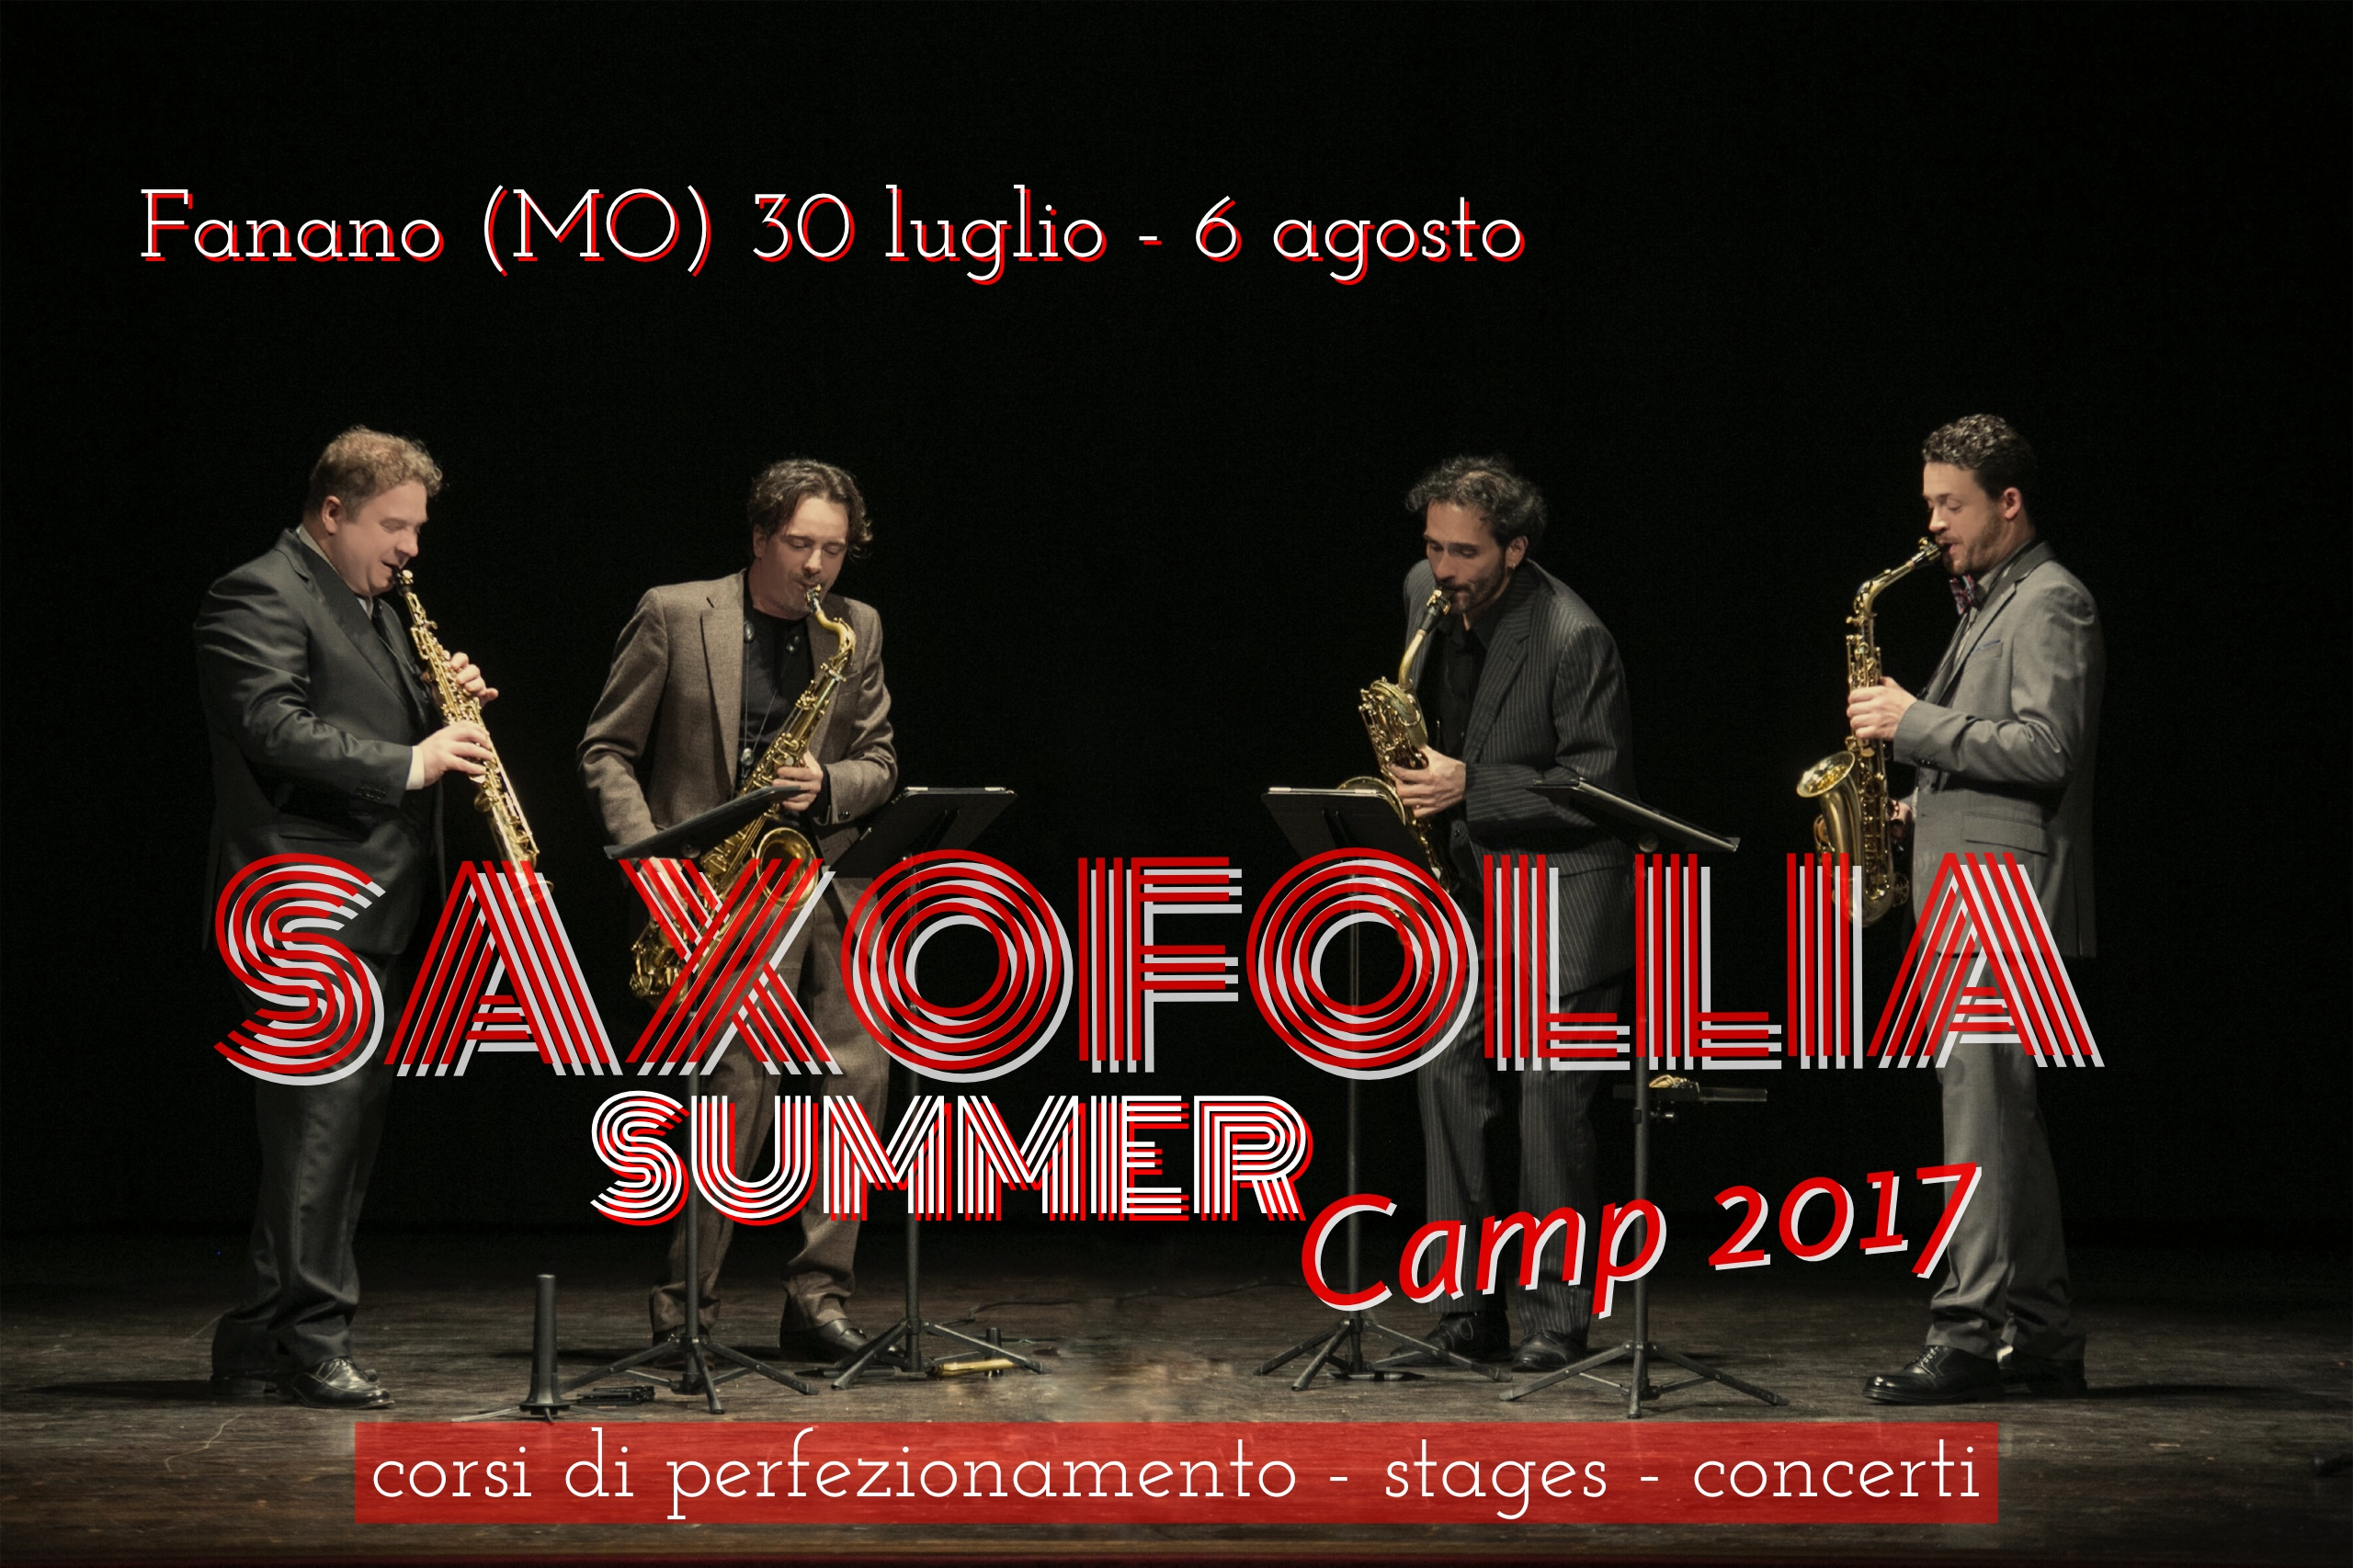 Saxofollia Summer Camp 2017